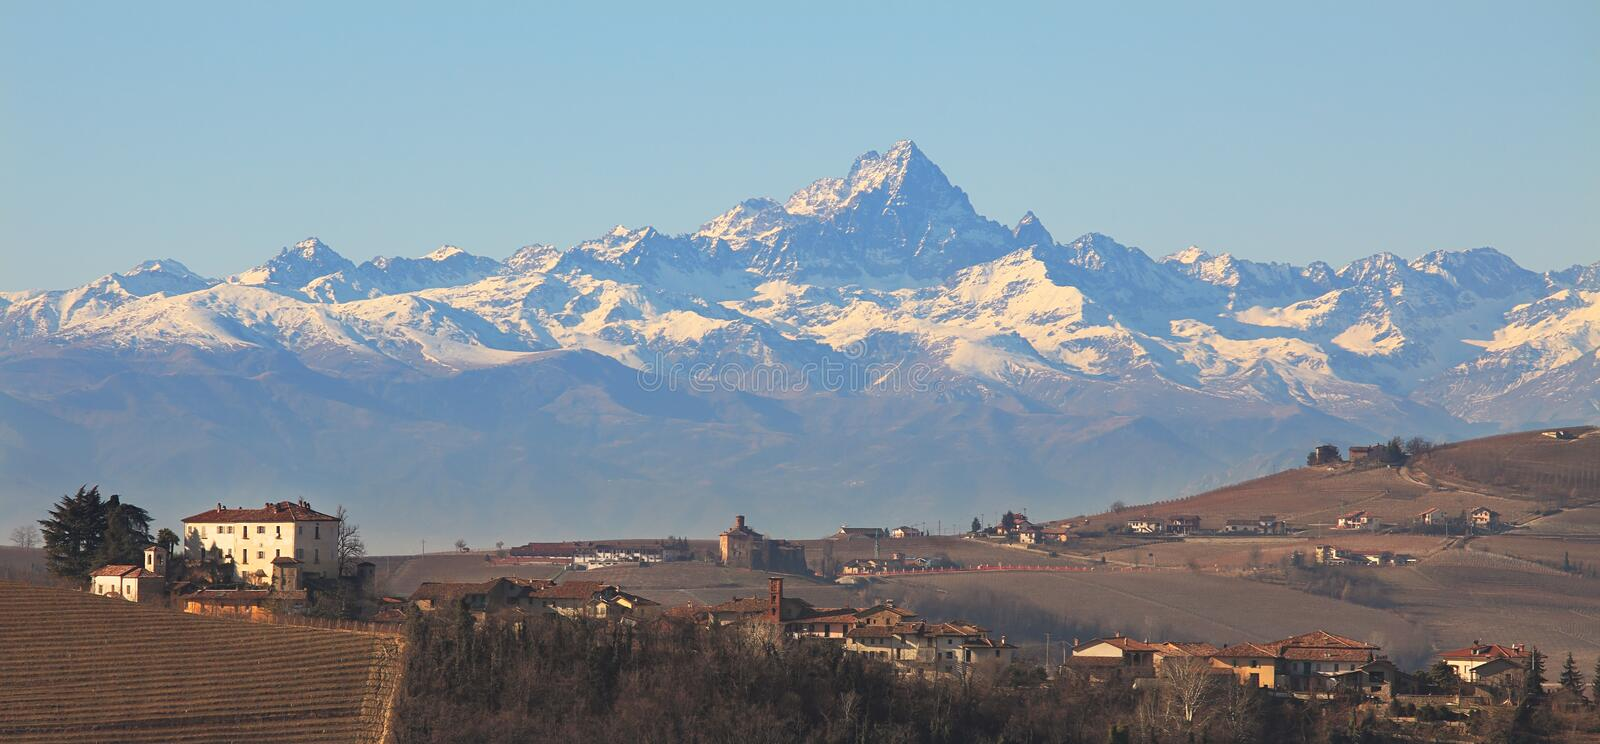 Hills And Mountains. Piedmotn, Italy. Stock Image